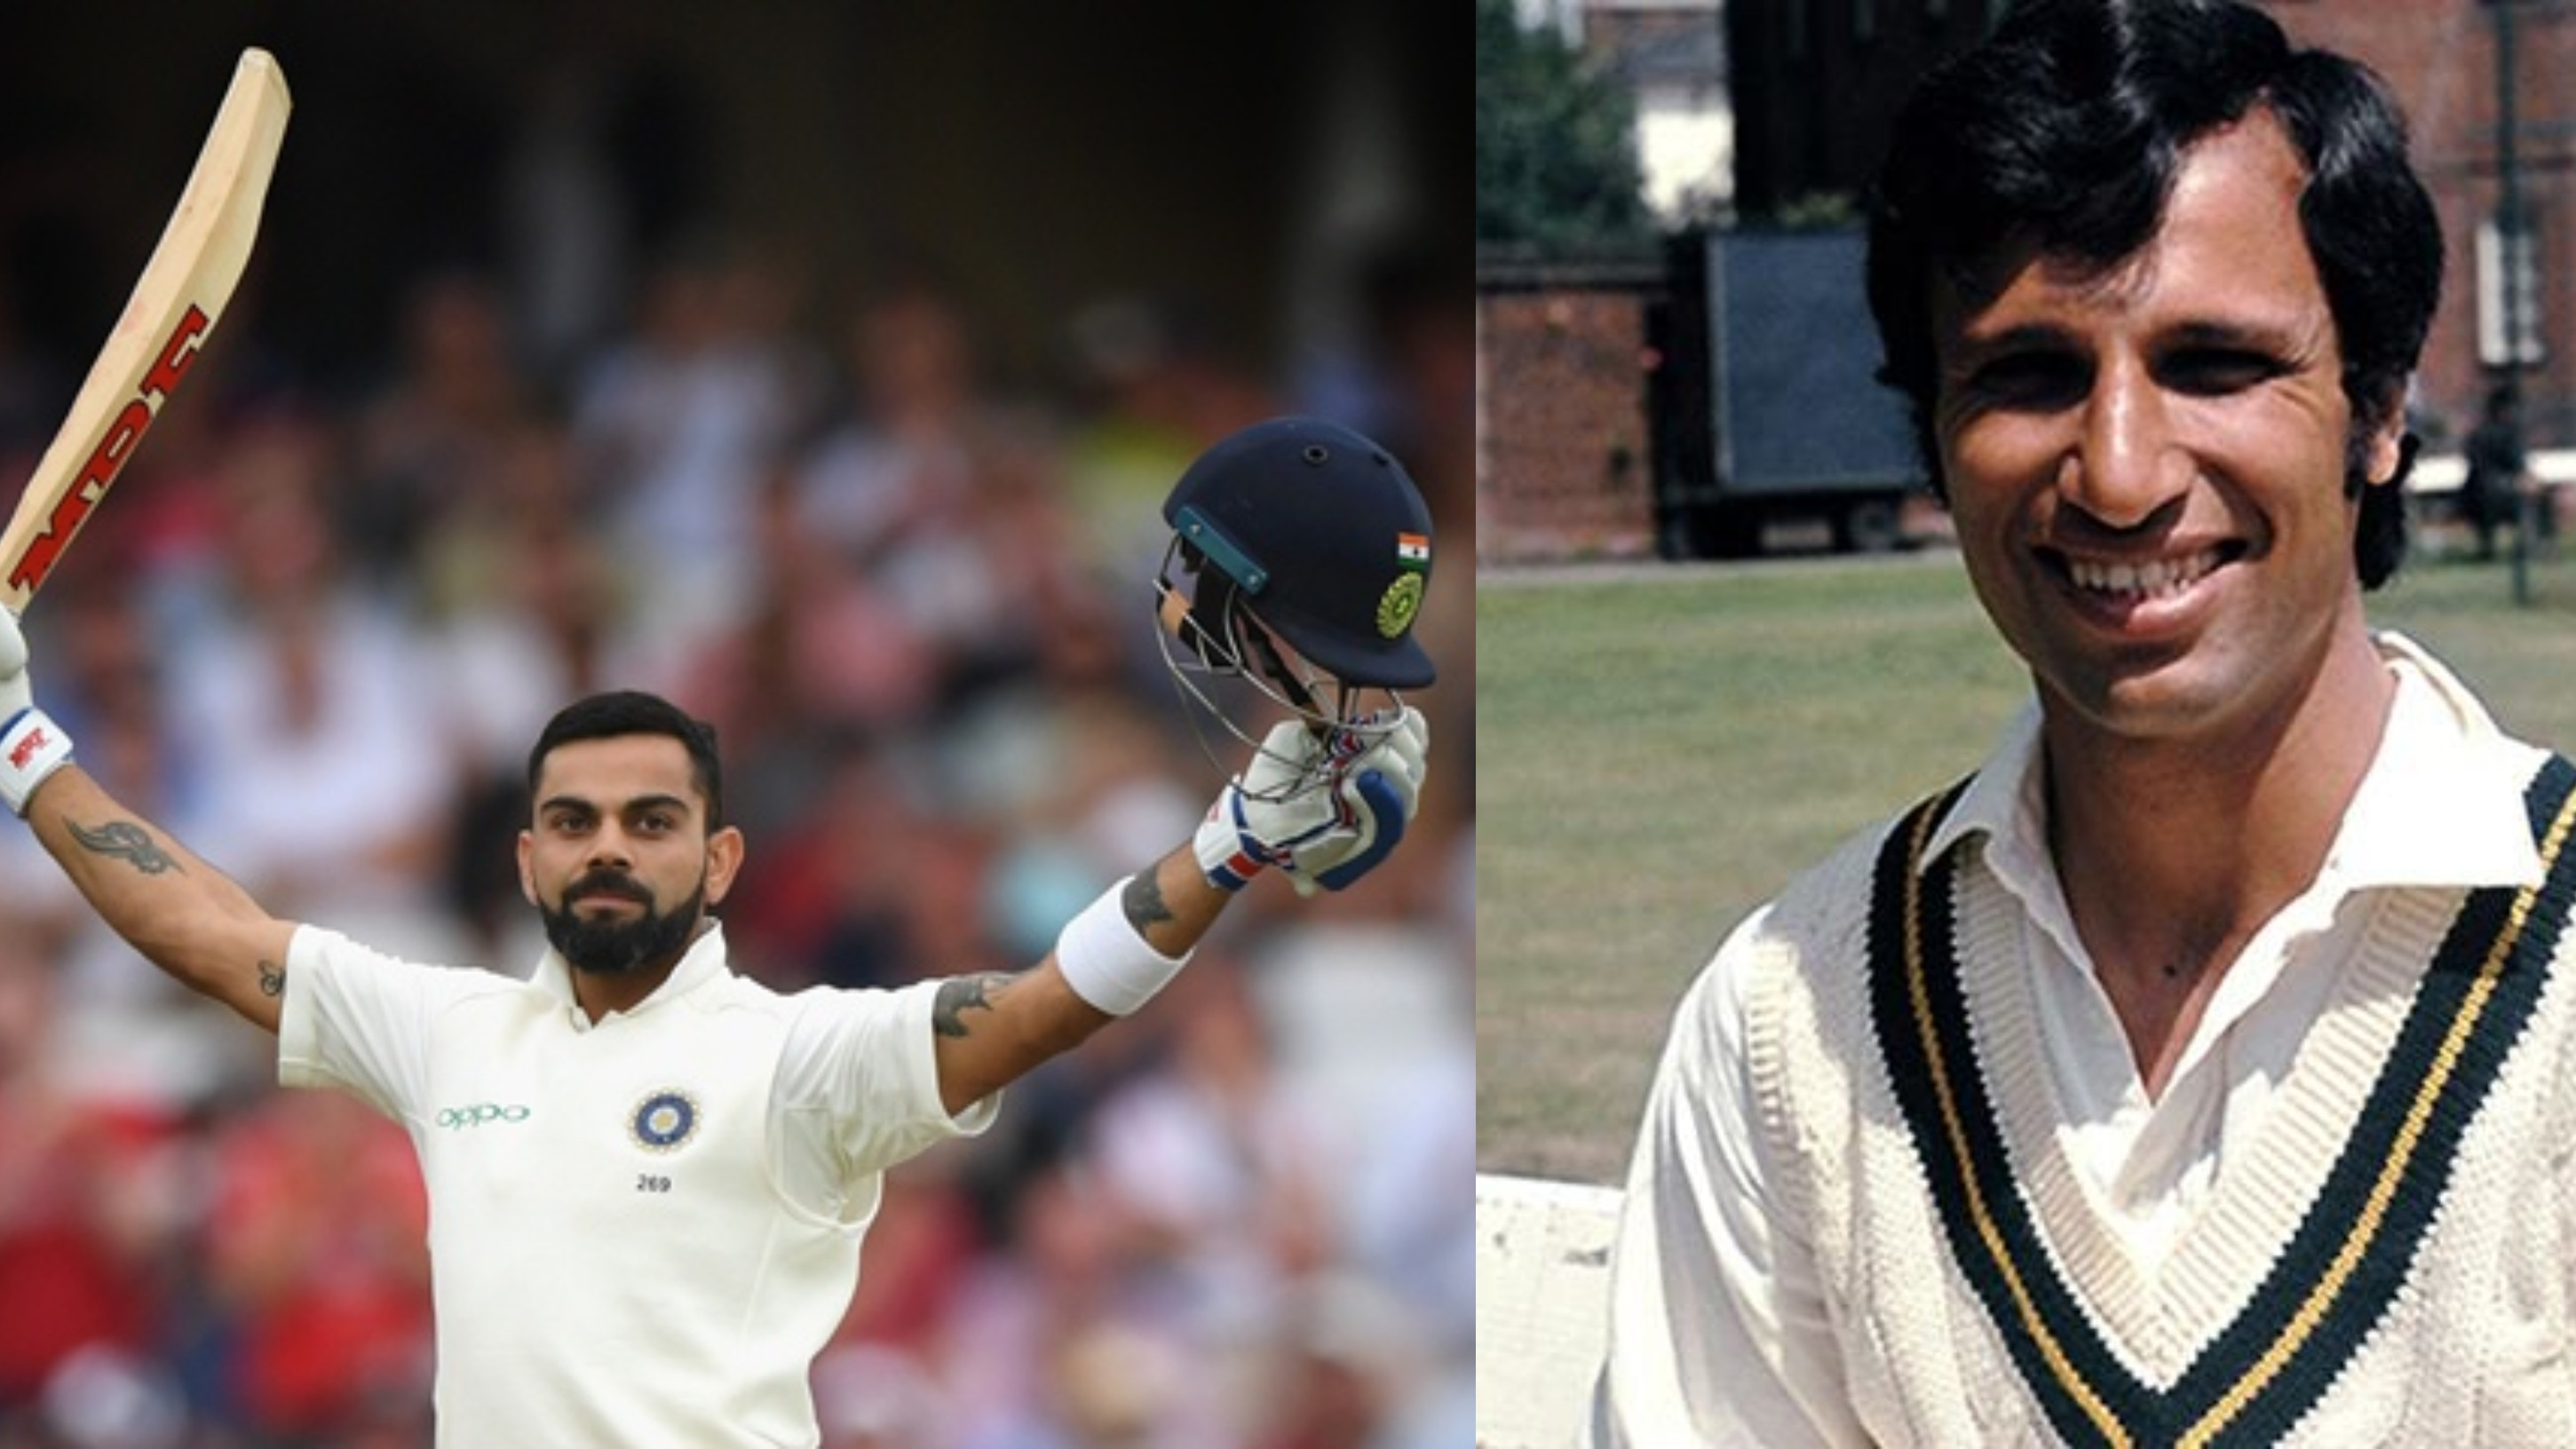 Virat Kohli's captaincy reminds me of Imran Khan: Asif Iqbal